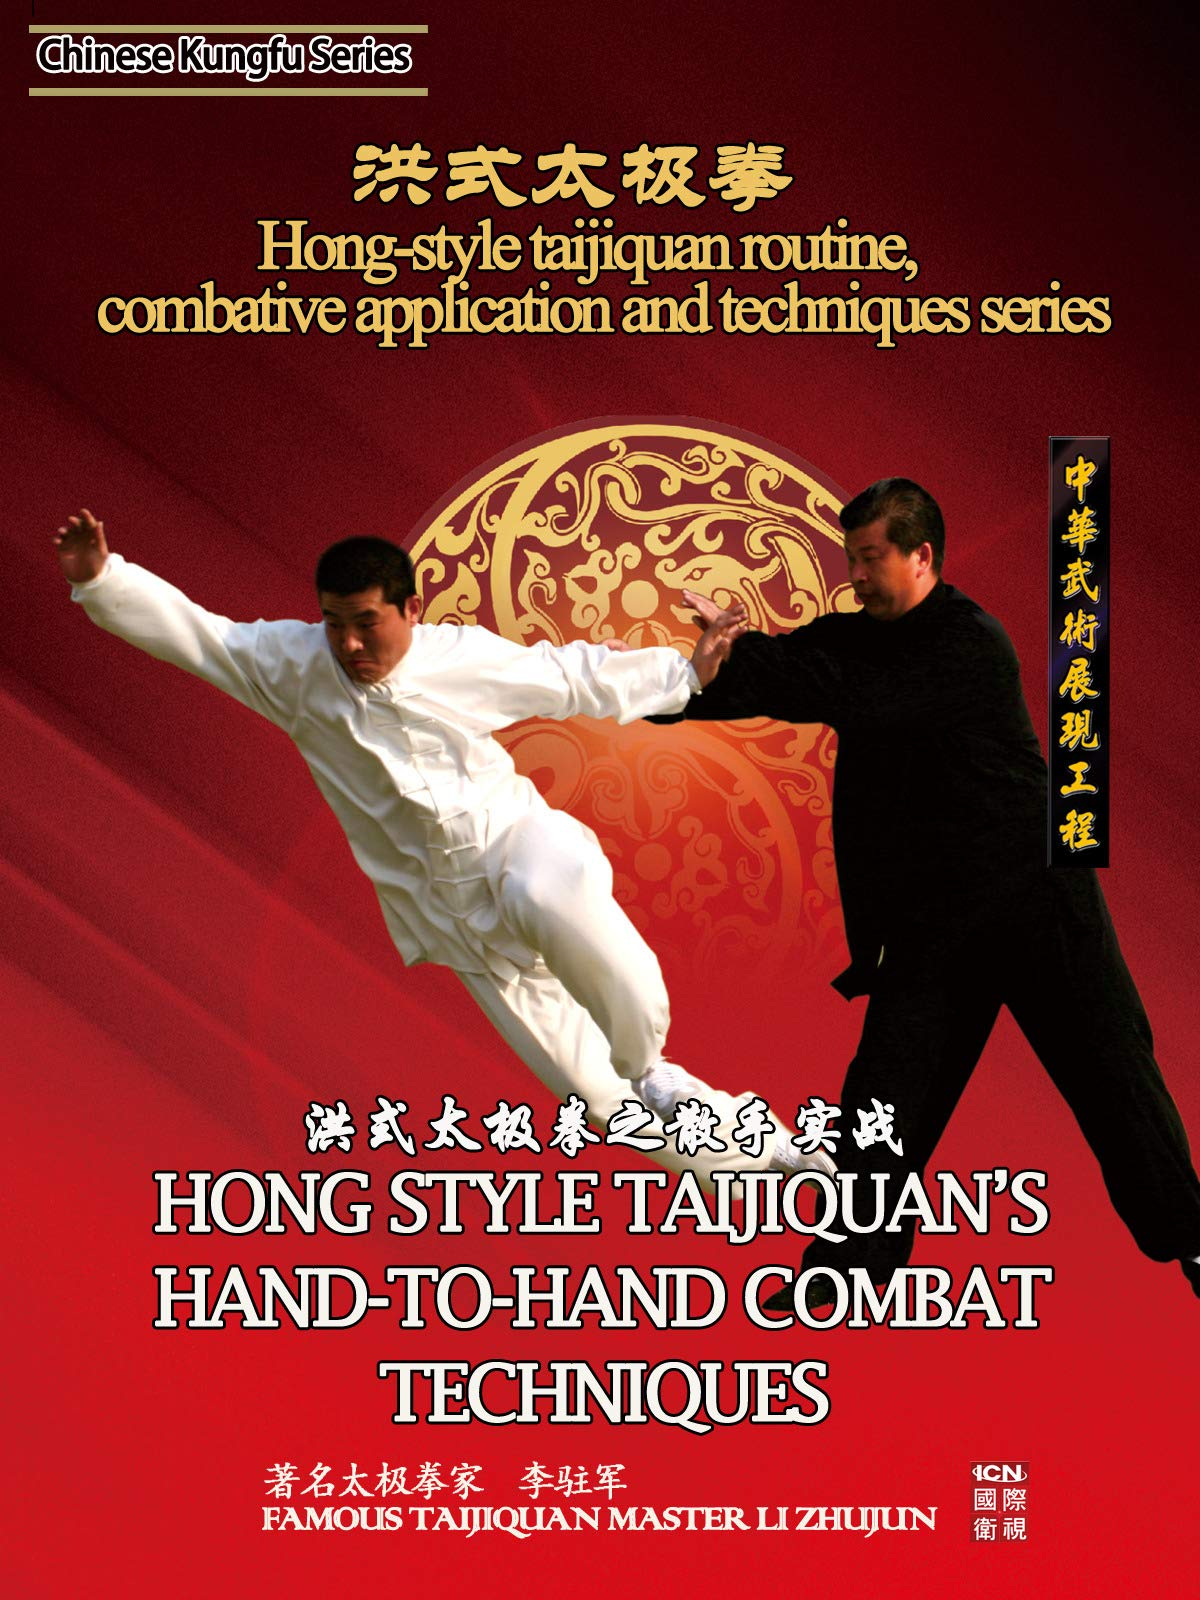 Clip: Hong-style taijiquan routine combative application and techniques series-Hong style taijiquan's Hand-to-hand combat techniques